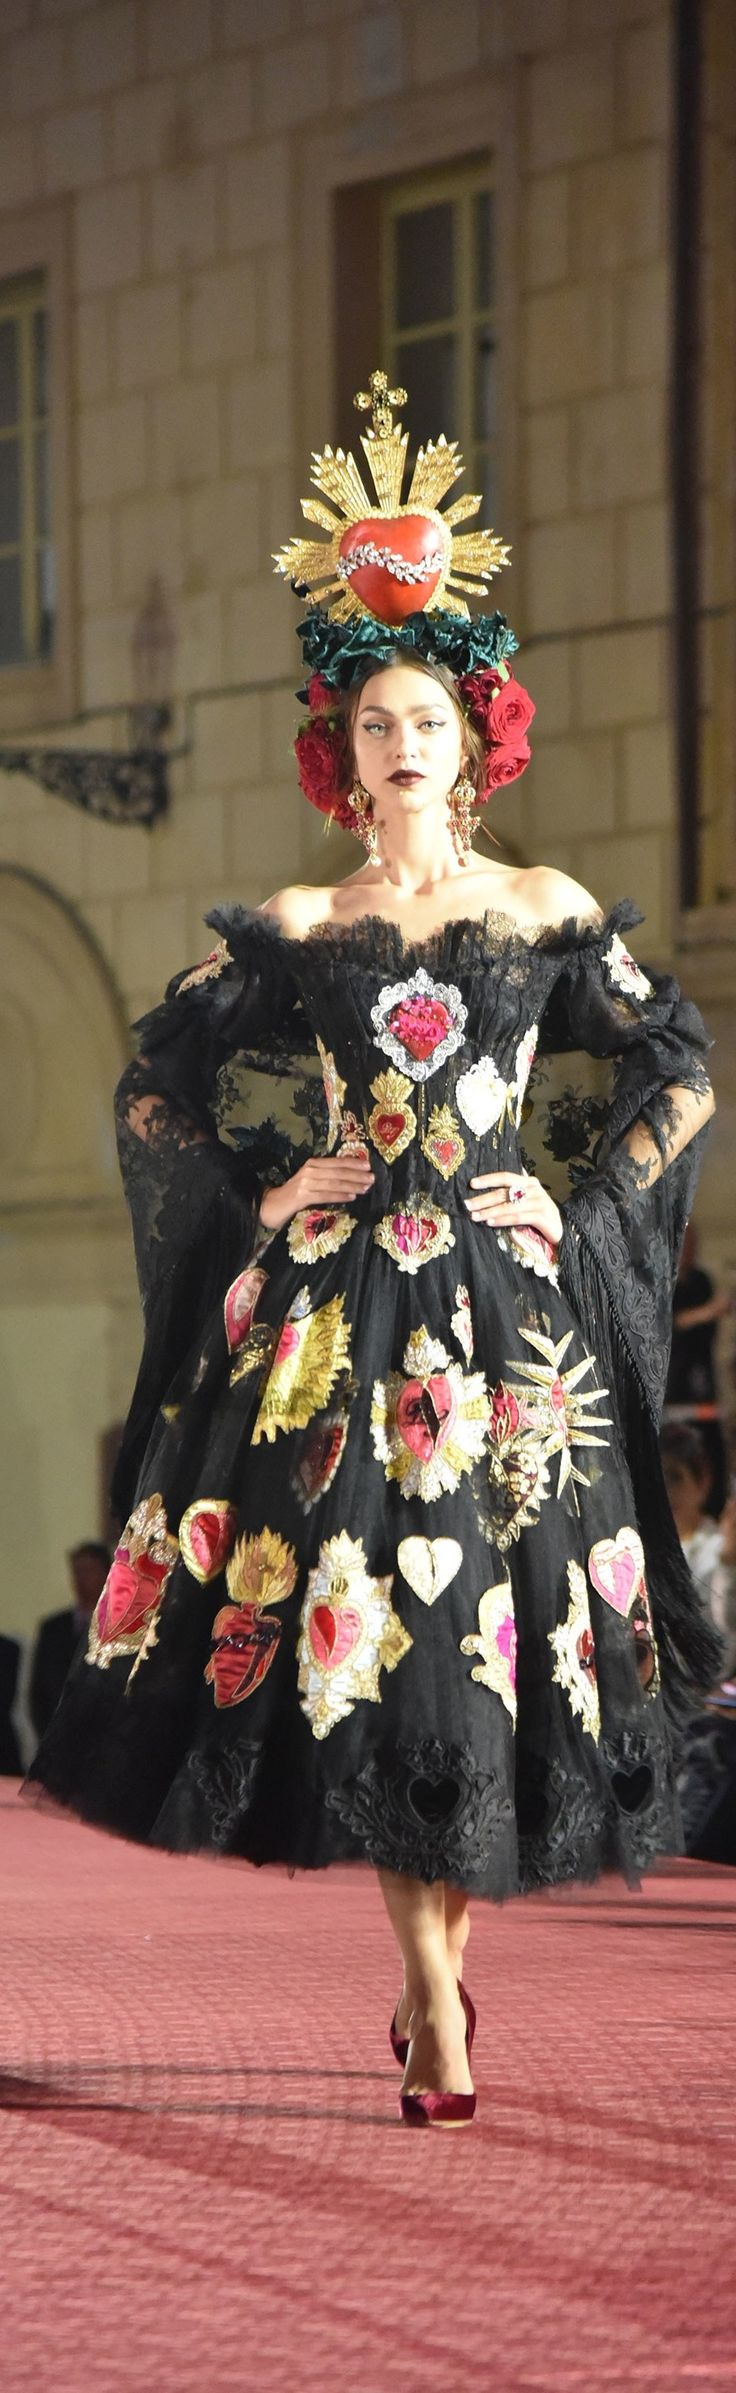 Dolce and Gabbana Fall 2017 Couture vogue.com